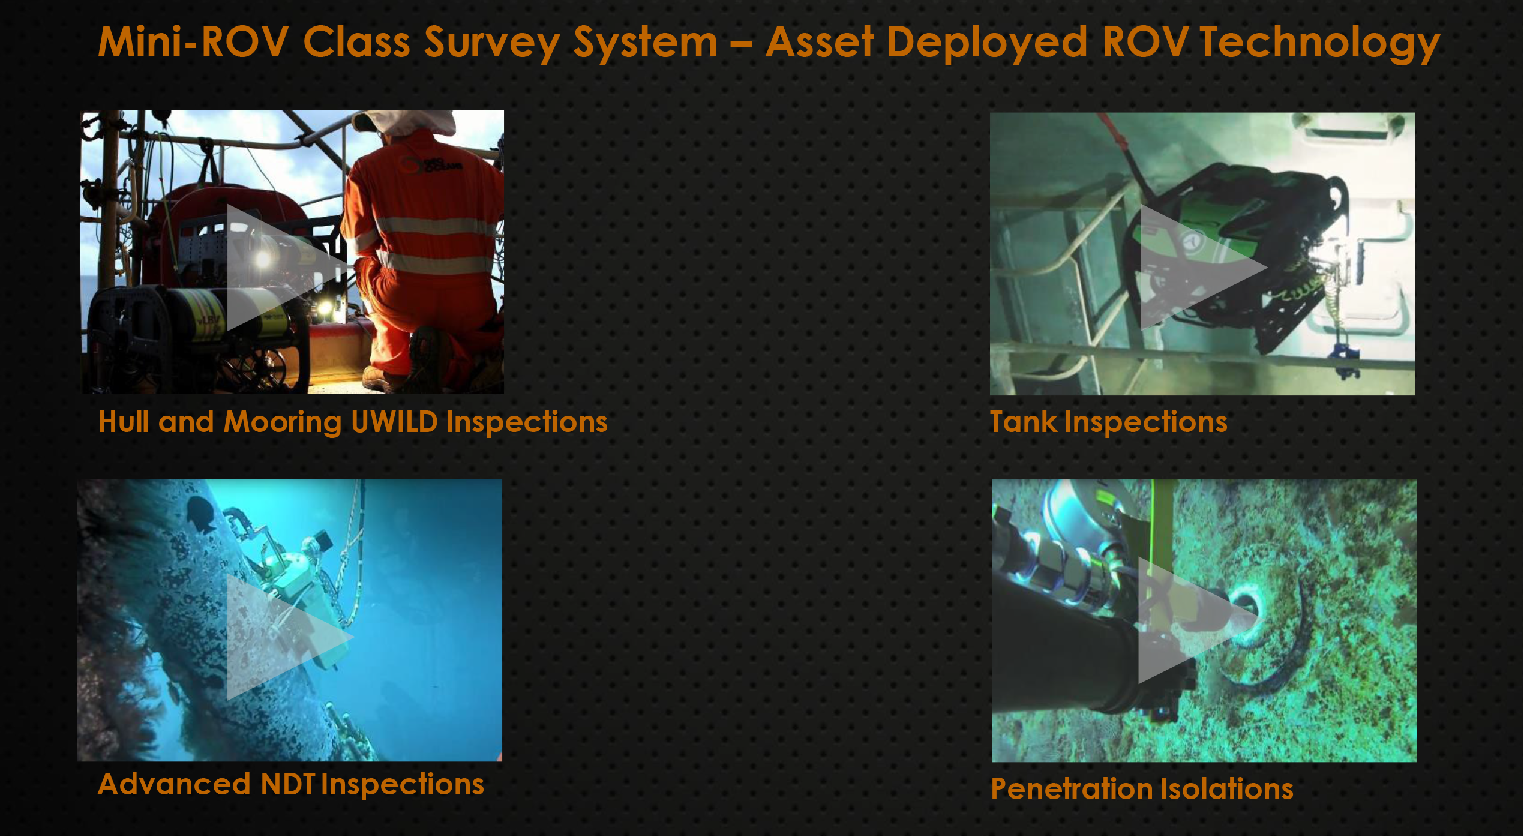 Mini-ROV-Asset-Deployed-Hull-Tanks-and-Mooring-Inspections